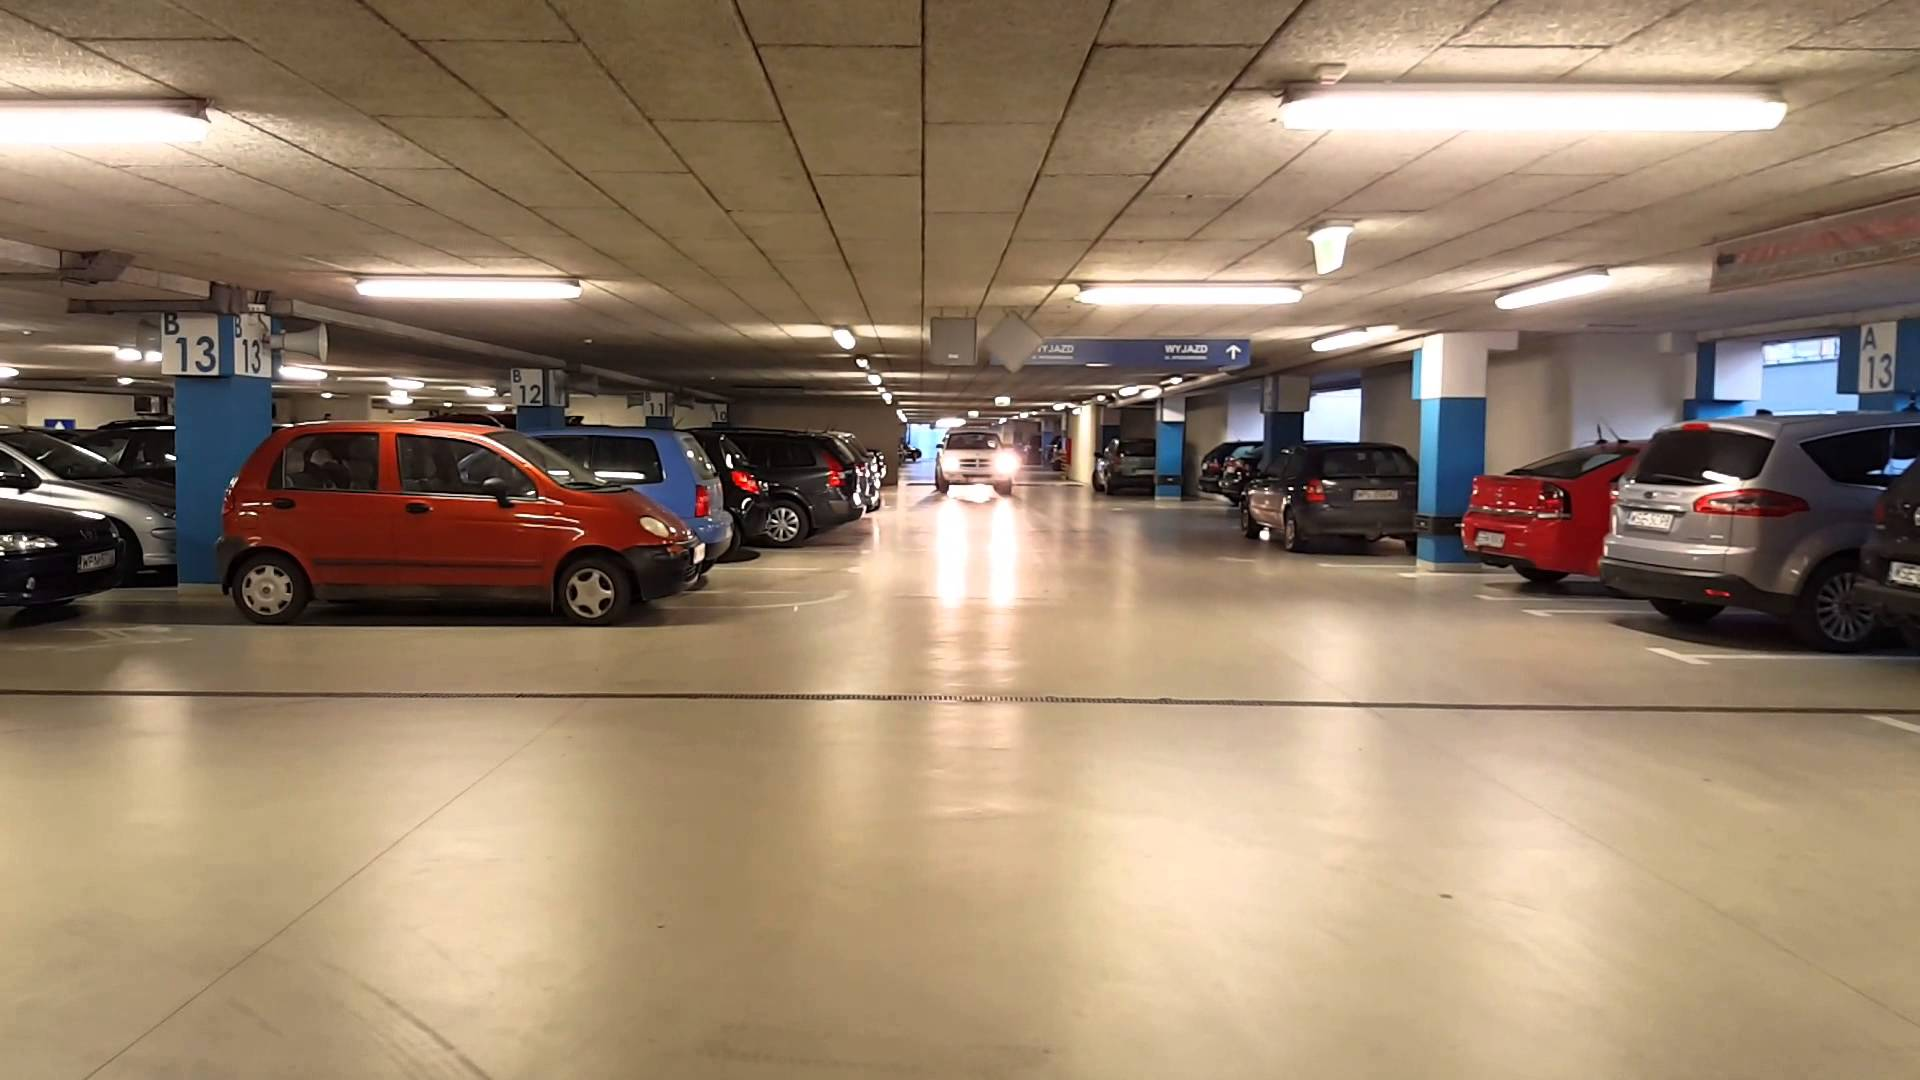 Different Kinds Of Airport Car Parking Services